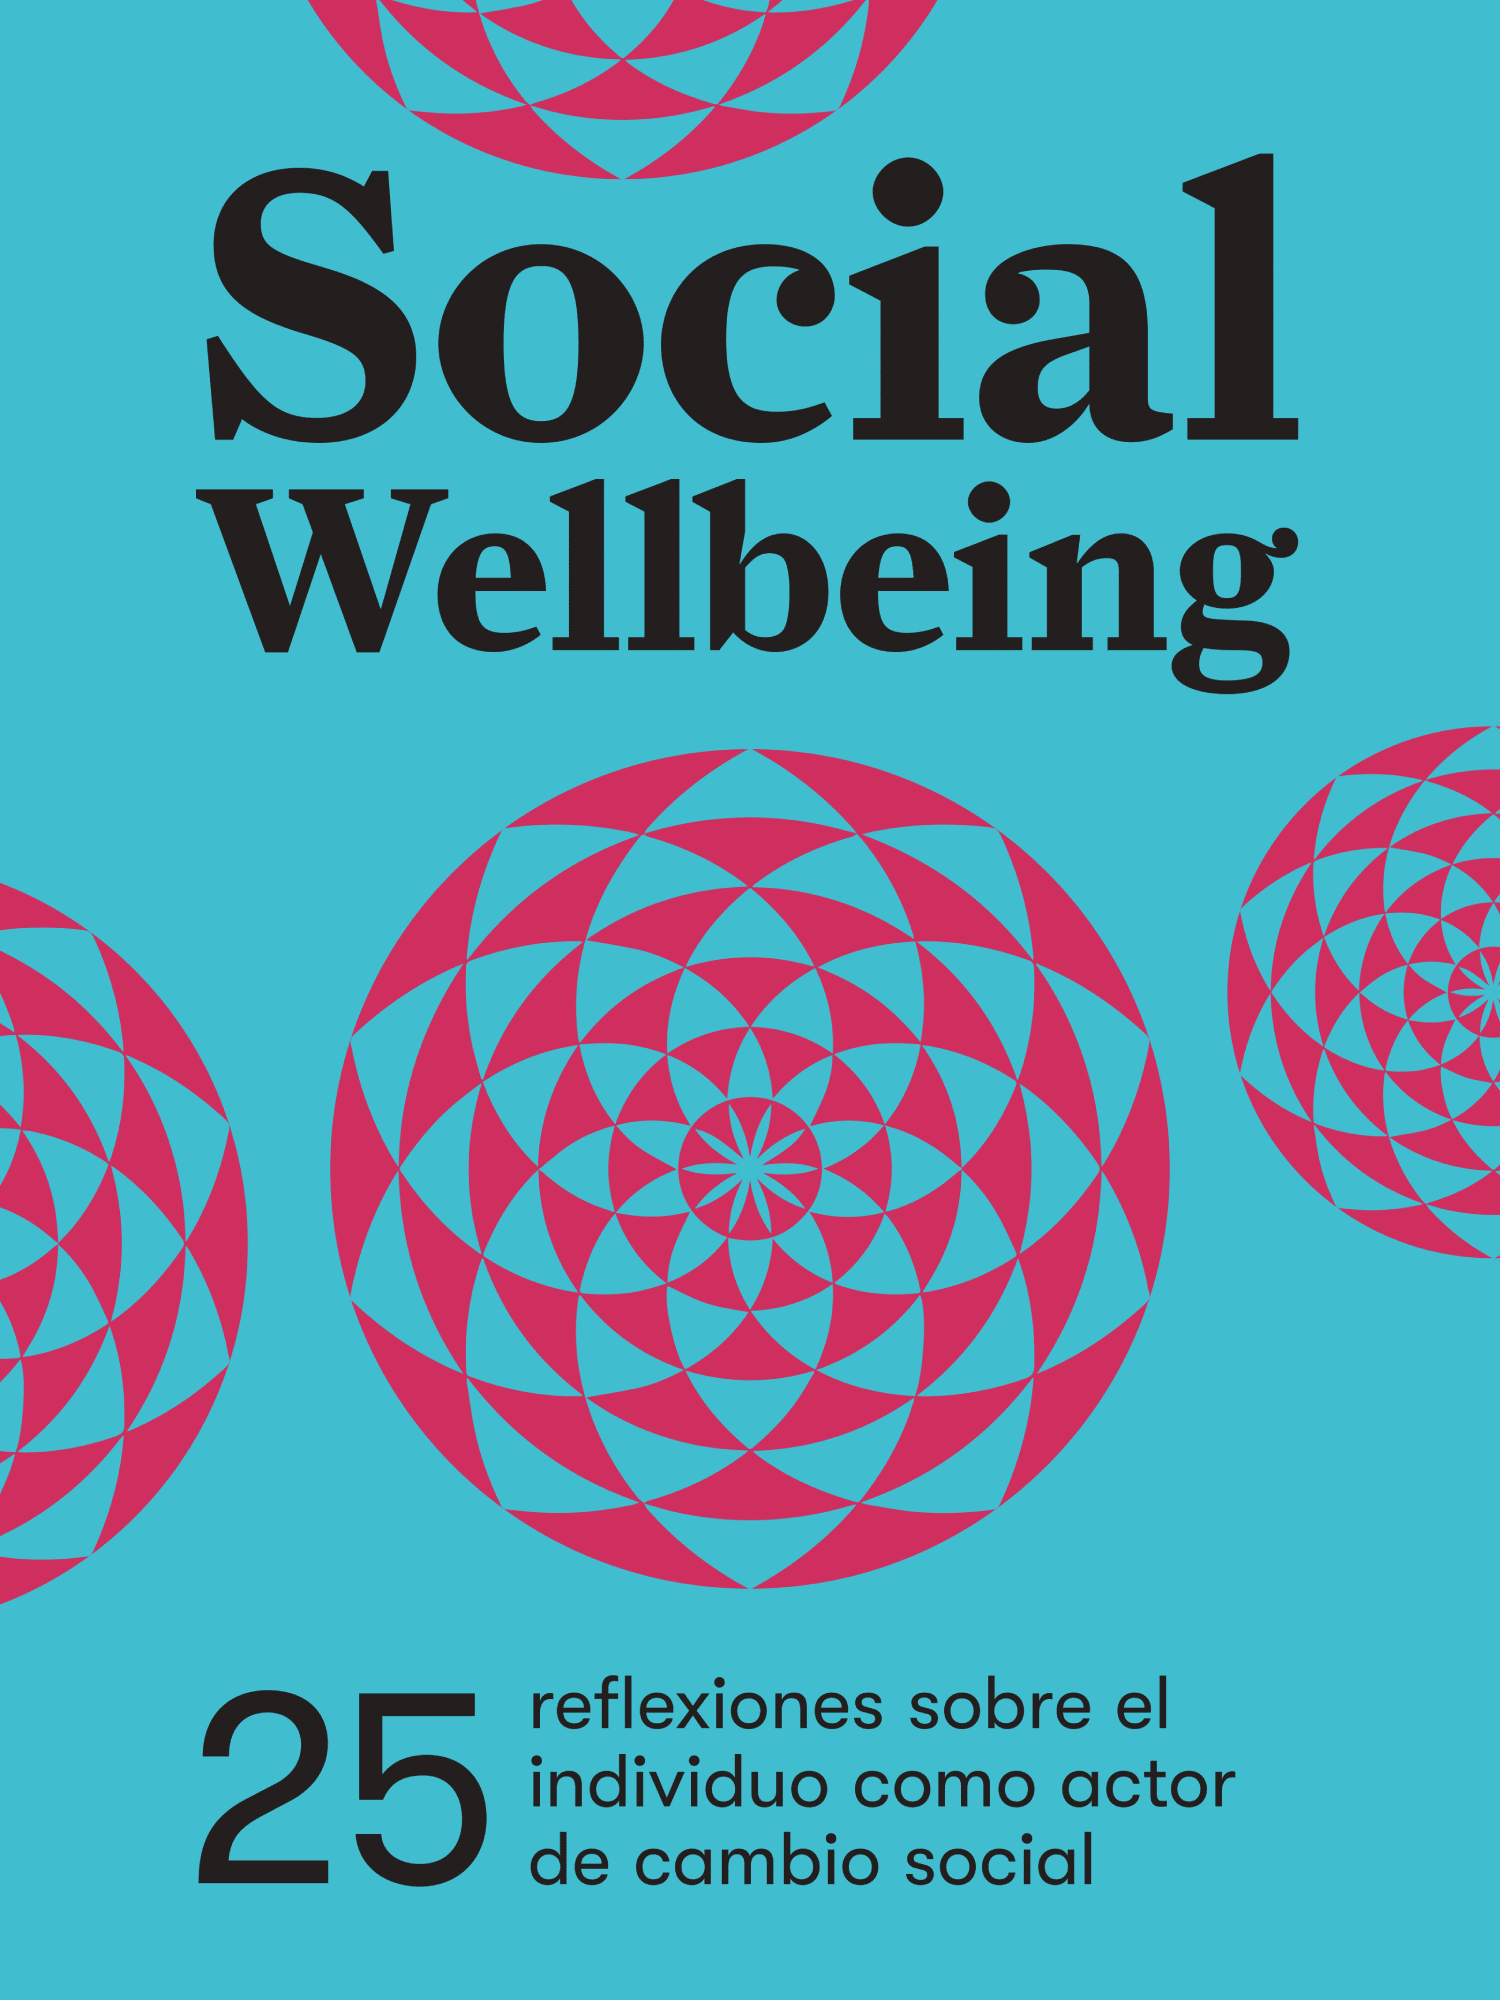 Ebook Social Wellbeing para iPad 2048x1536px (FINAL) (1)_page-0001